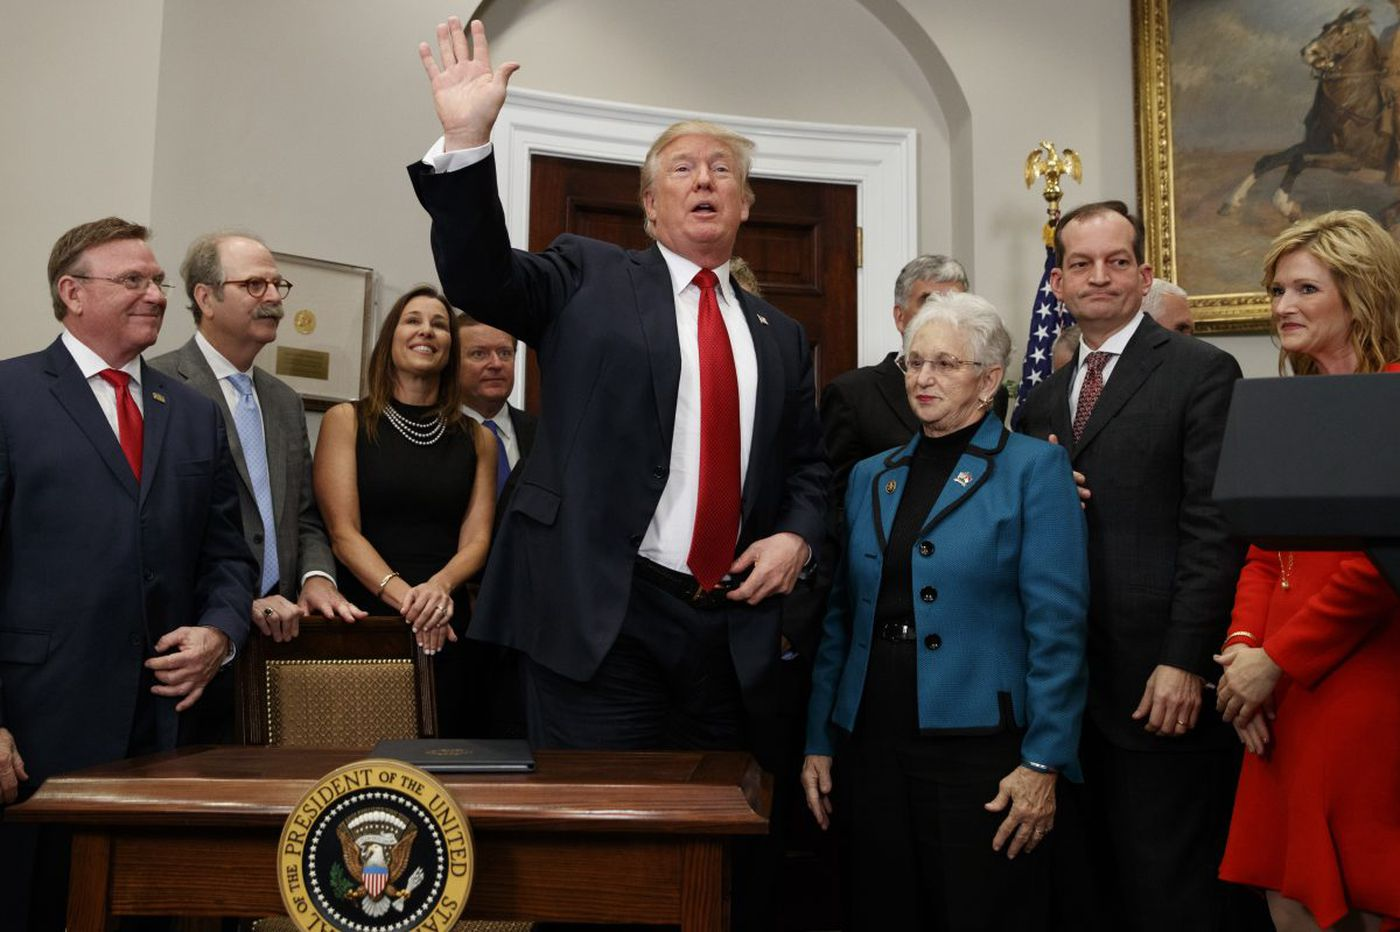 In consequential week, Trump uses pen to shape immigration, health care, Iran deal